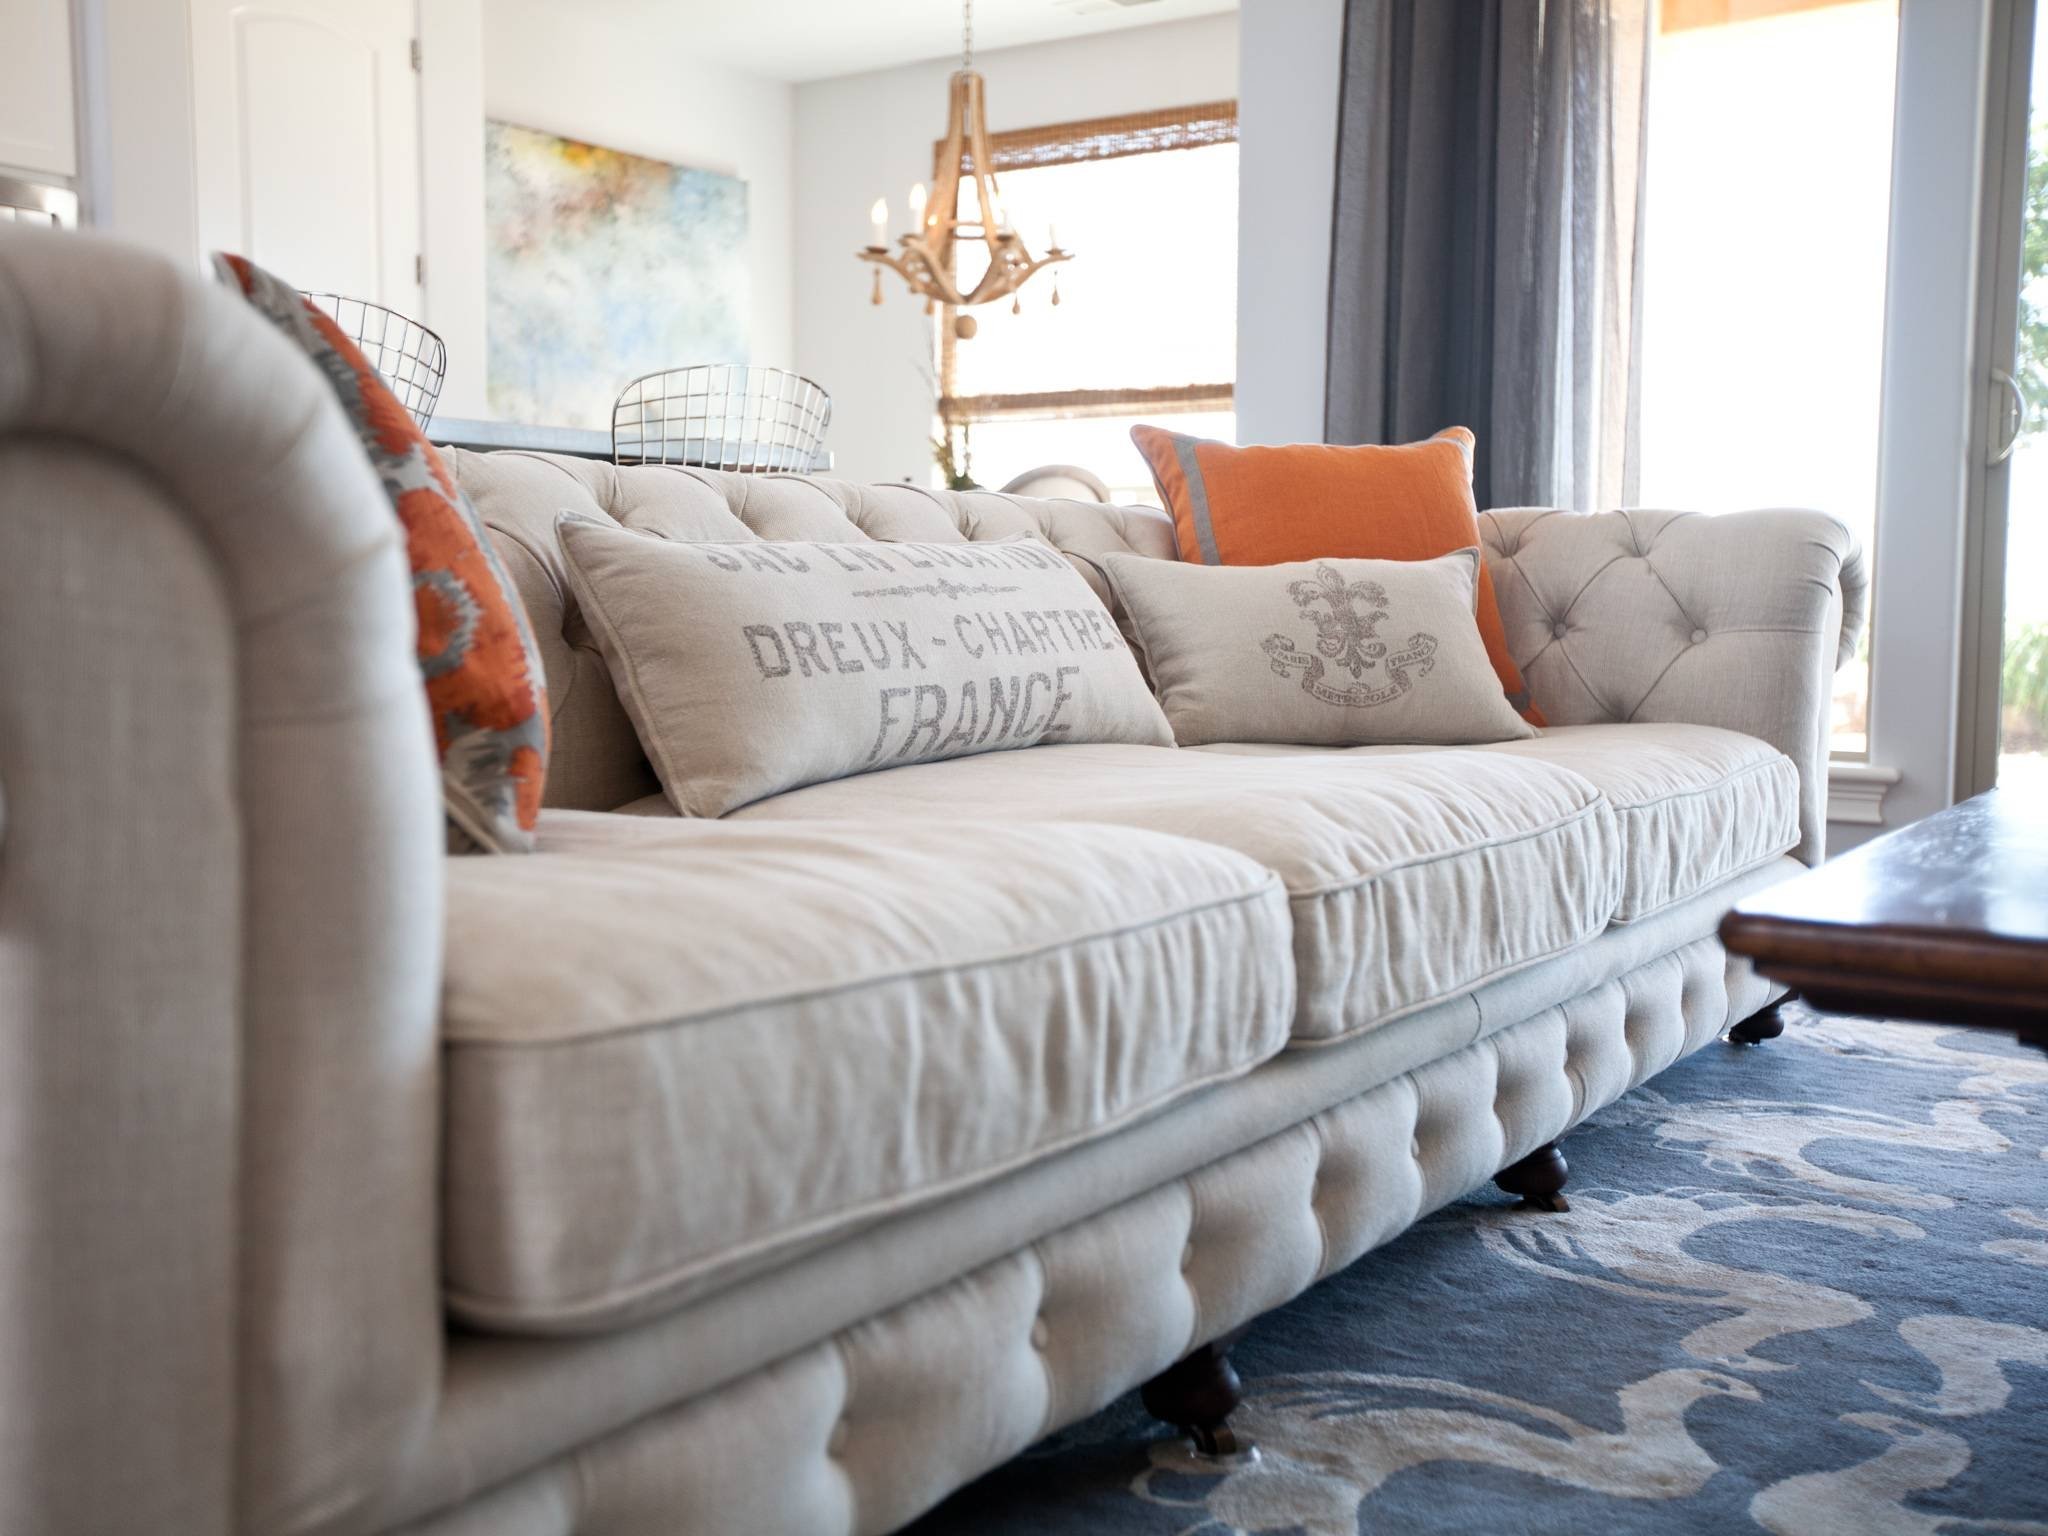 Magnificent Ideas Deep Couches Living Room Dazzling Club 96 Tufted regarding Arhaus Club Sofas (Image 12 of 15)